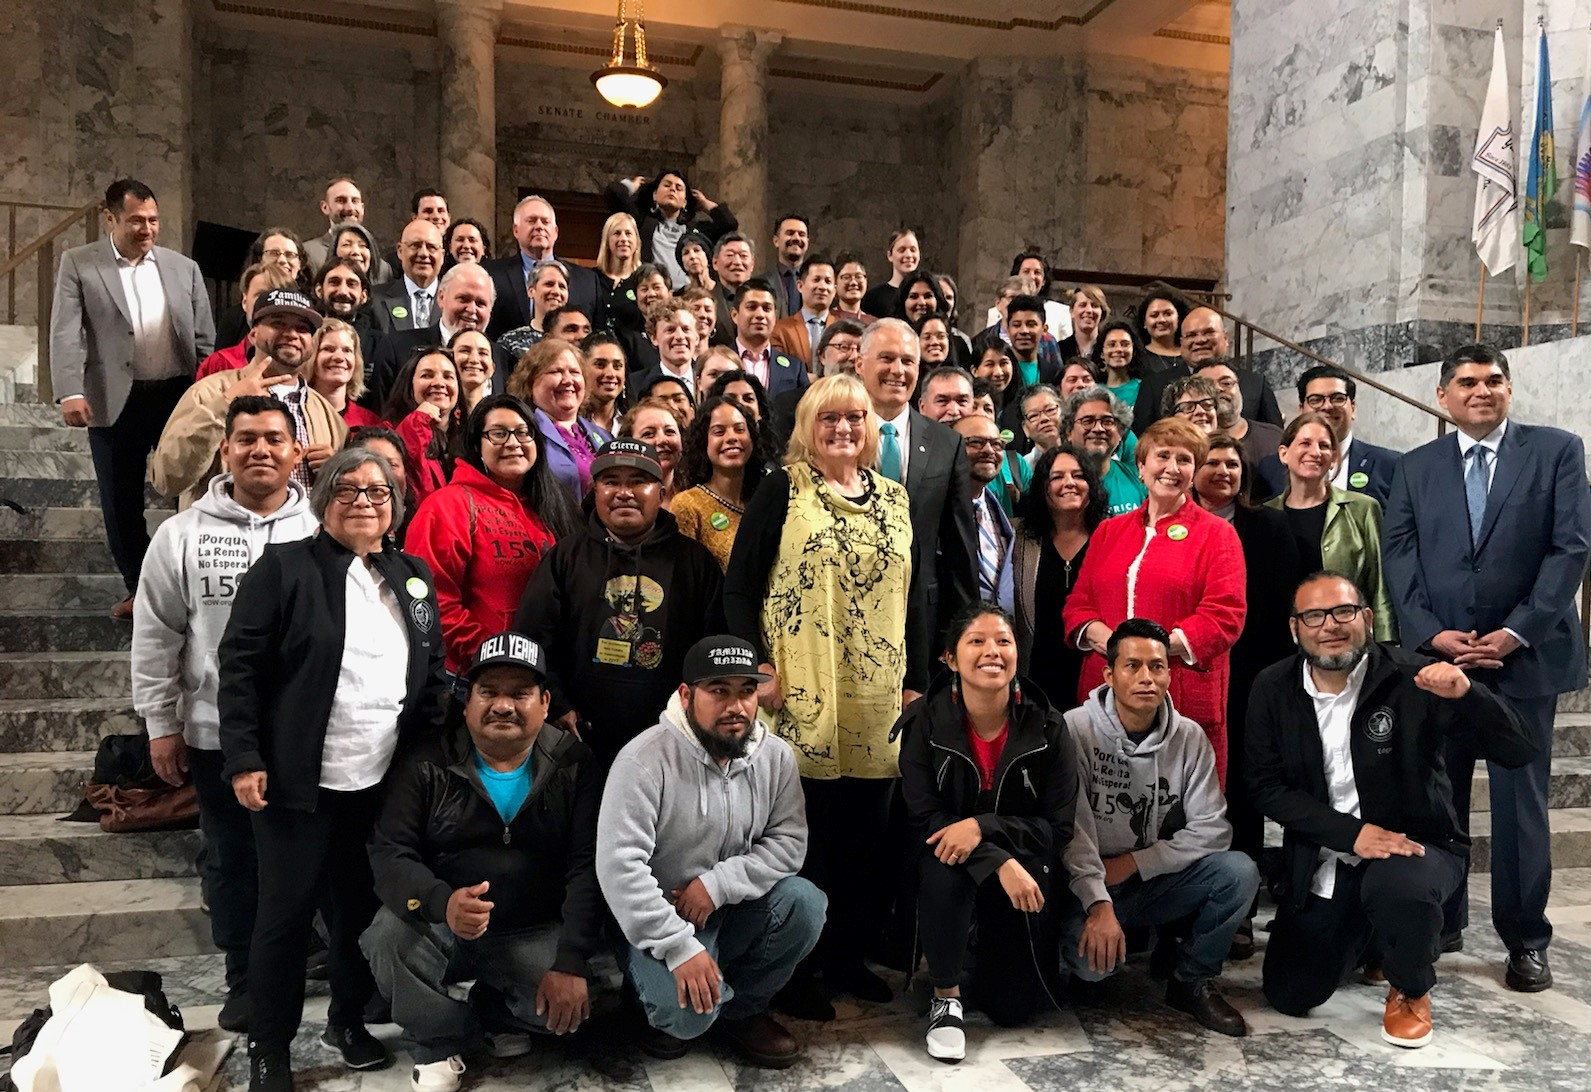 'Governor Signs Bill Paving Way for Meaningful  Protections for H-2A Farmworkers'